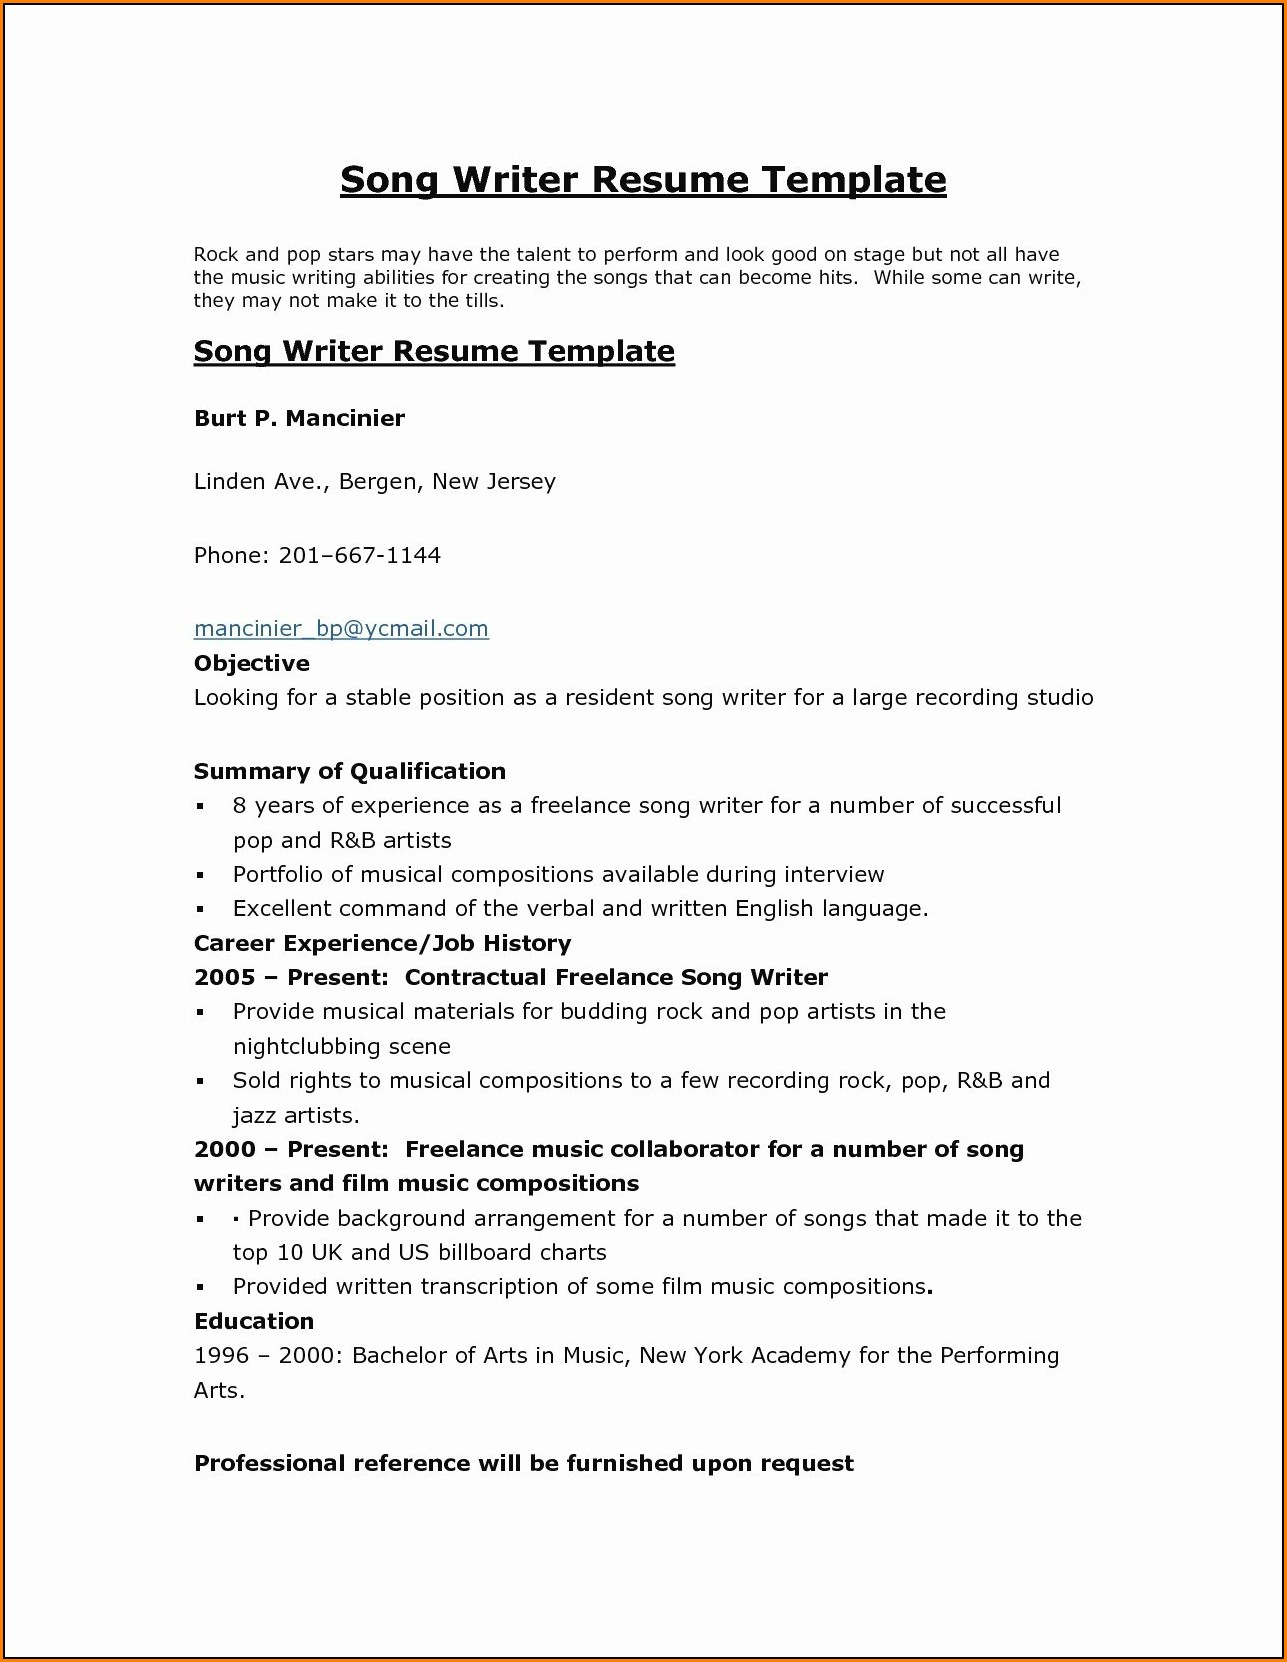 Resume Editing Services Free